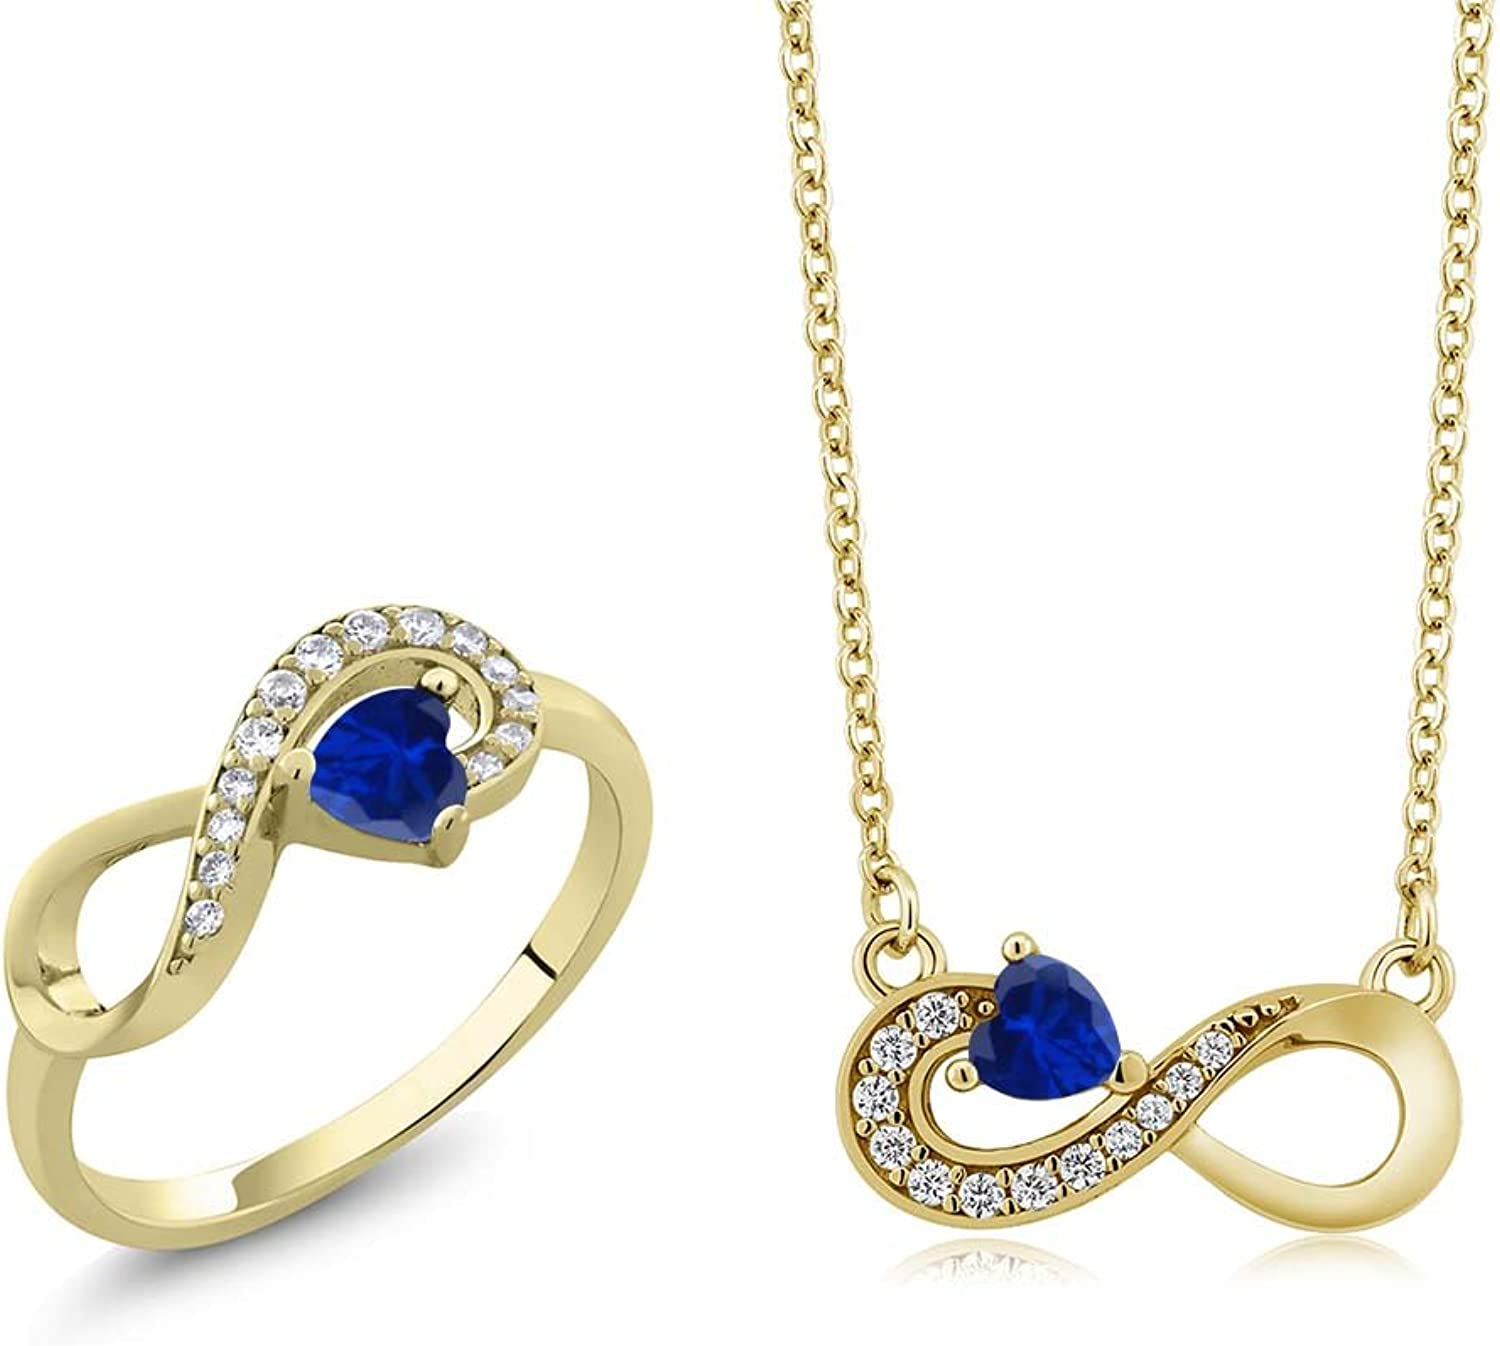 1.25 Ct bluee Simulated Sapphire 18K Yellow gold Plated Silver Ring Pendant Set